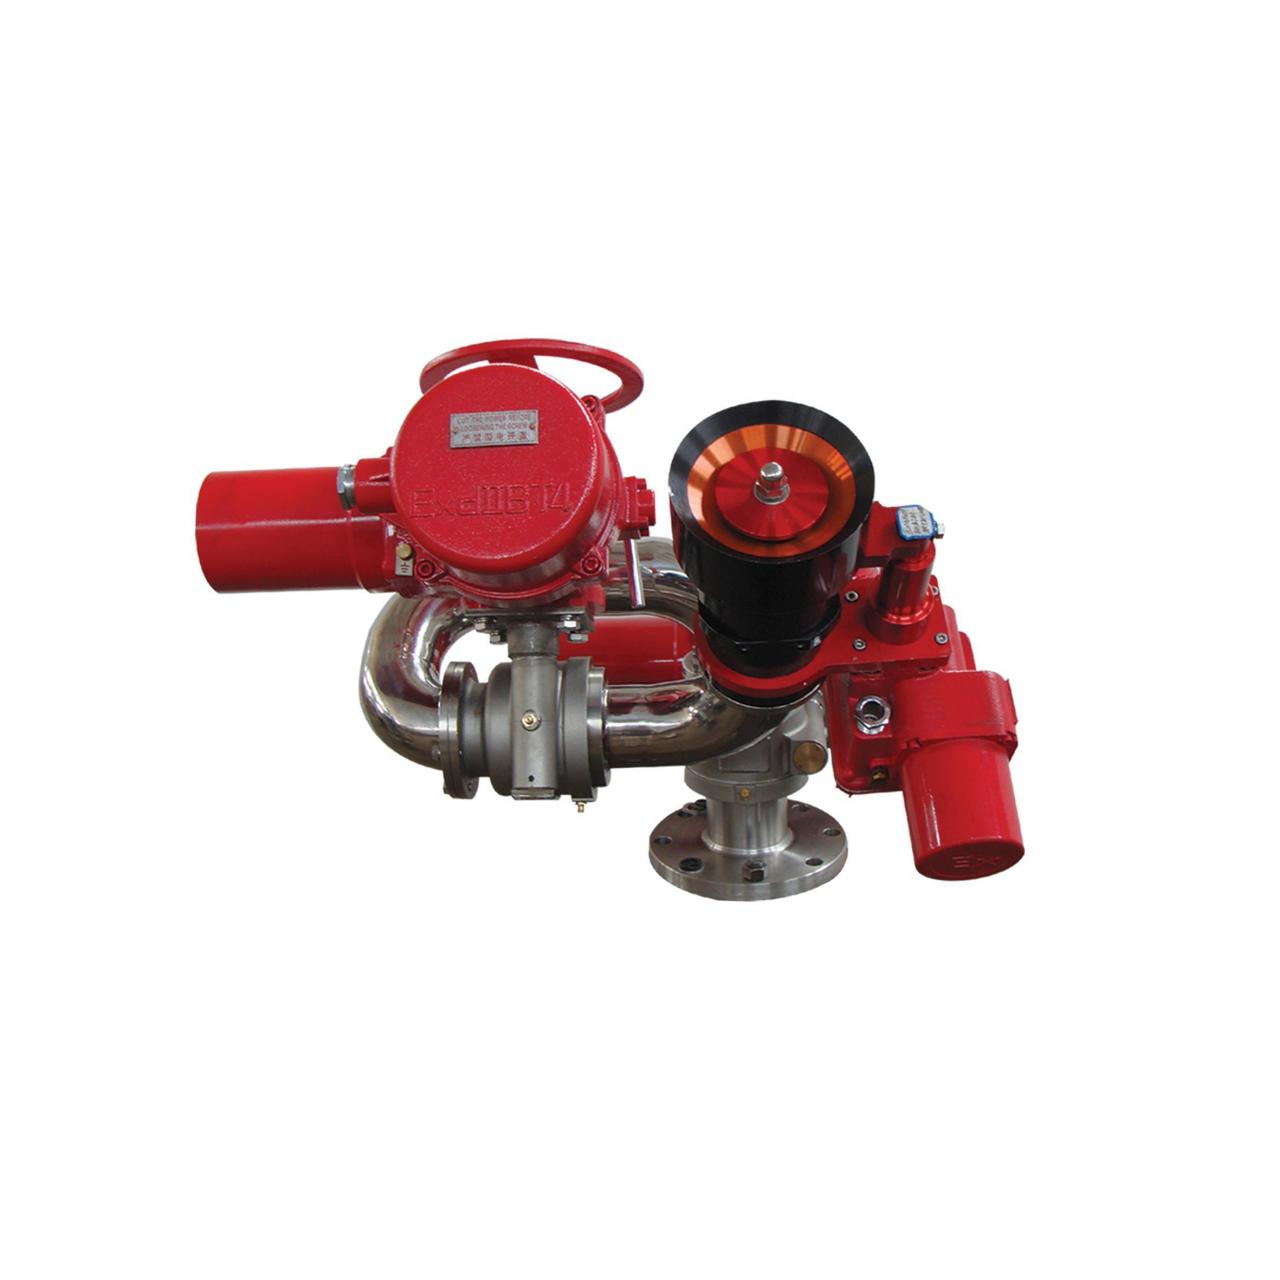 Cheap anti-explosion fixed fire monitor for sale